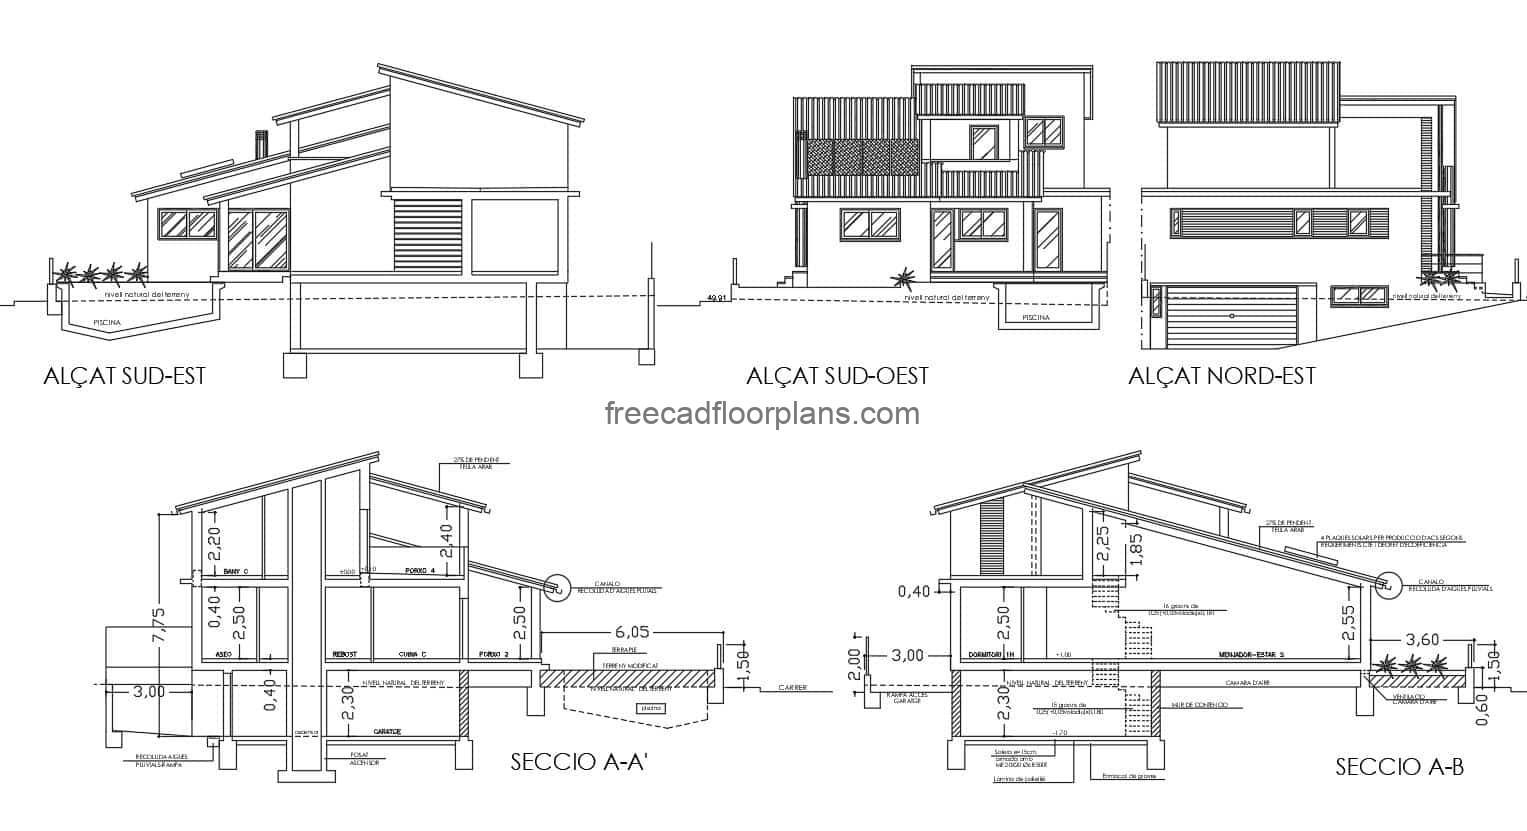 Complete preliminary plans for a two-storey residence with a modern style and a basement for vehicle parking. The residence has sloping roofs, three rooms in the second level area and social area in the first level. Complete set of plans in Autocad DWG format, architectural plans, dimensions, elevations, sections, toilets, foundations, for free download. Complete editable blueprints.